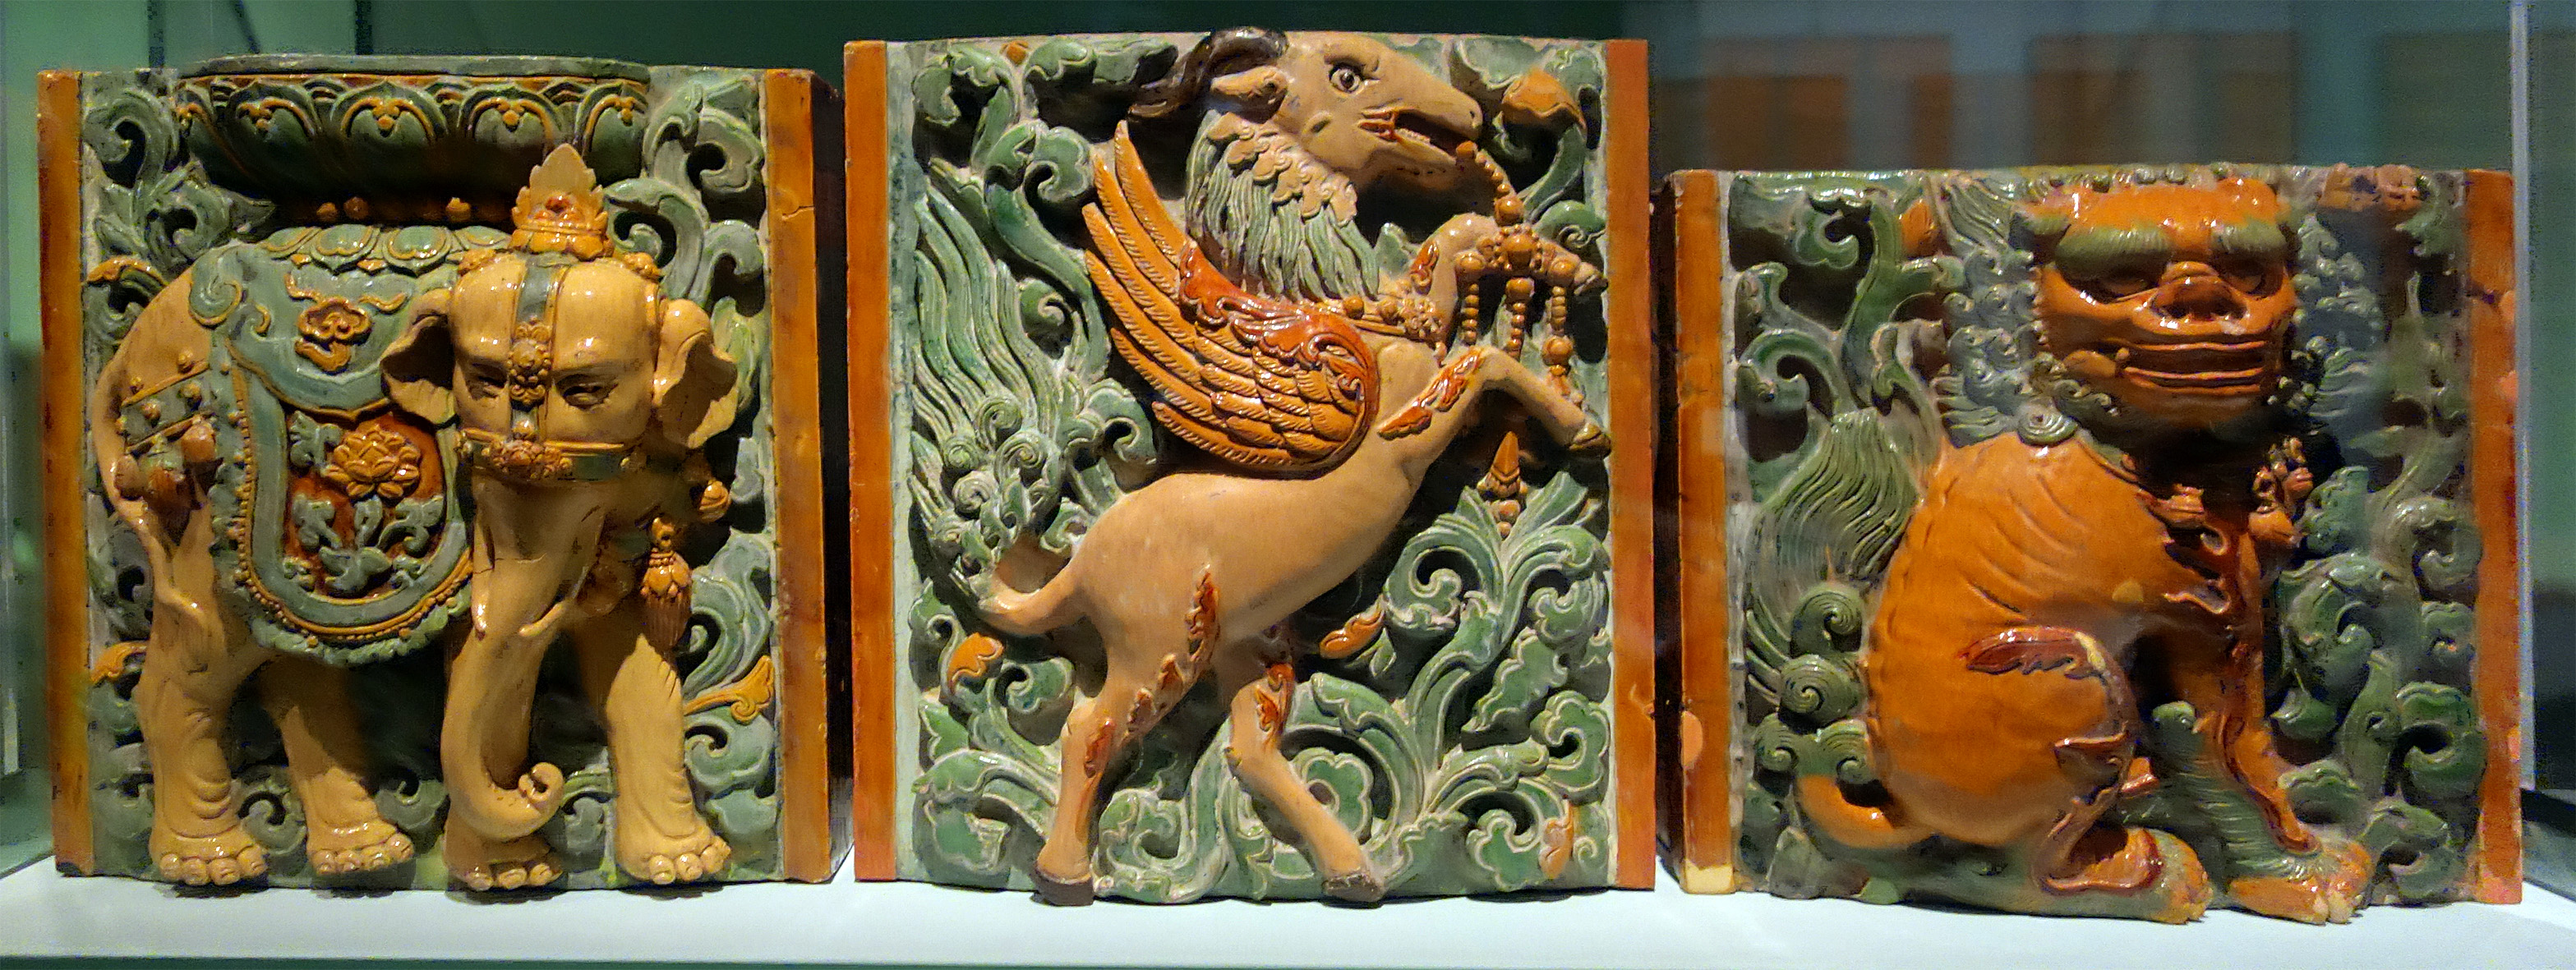 Tiles from Porcelain Pagoda